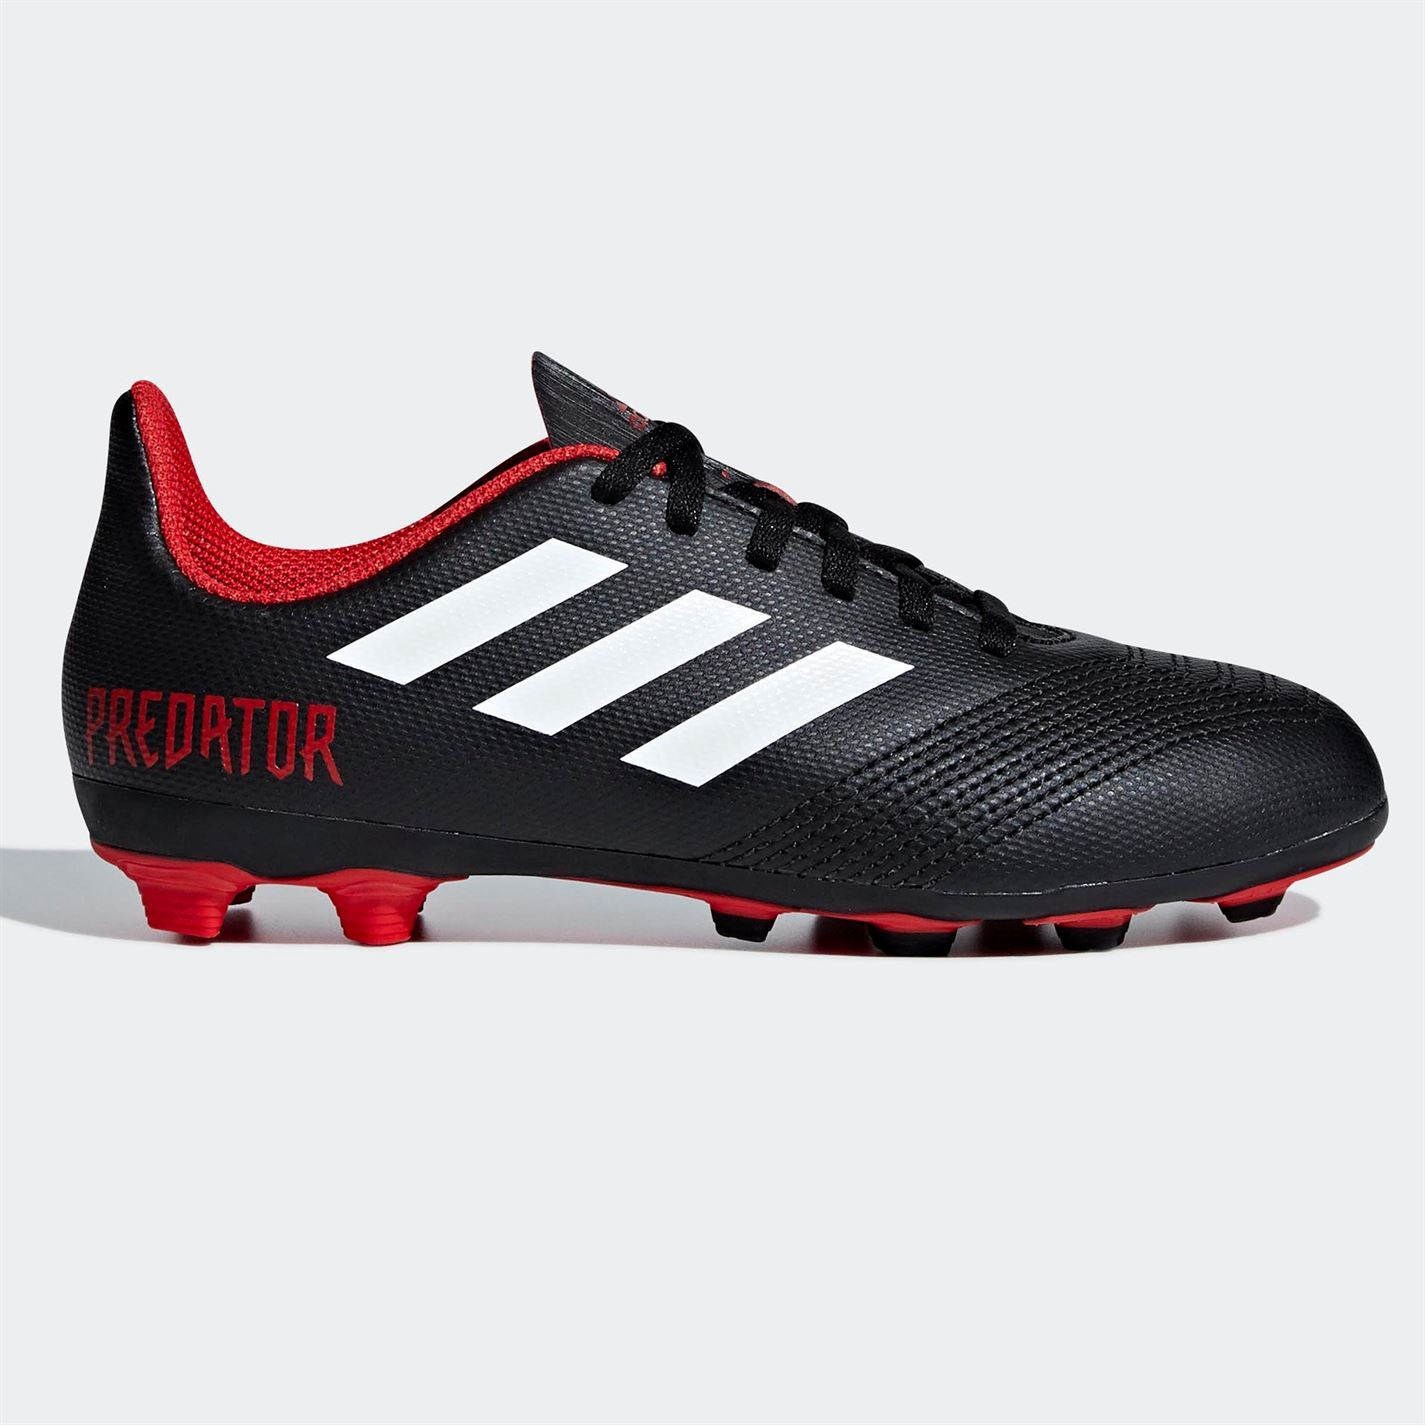 promo code c93c8 4860d ... adidas Predator 18.4 FG Firm Ground Football Boots Childs Soccer Shoes  Cleats